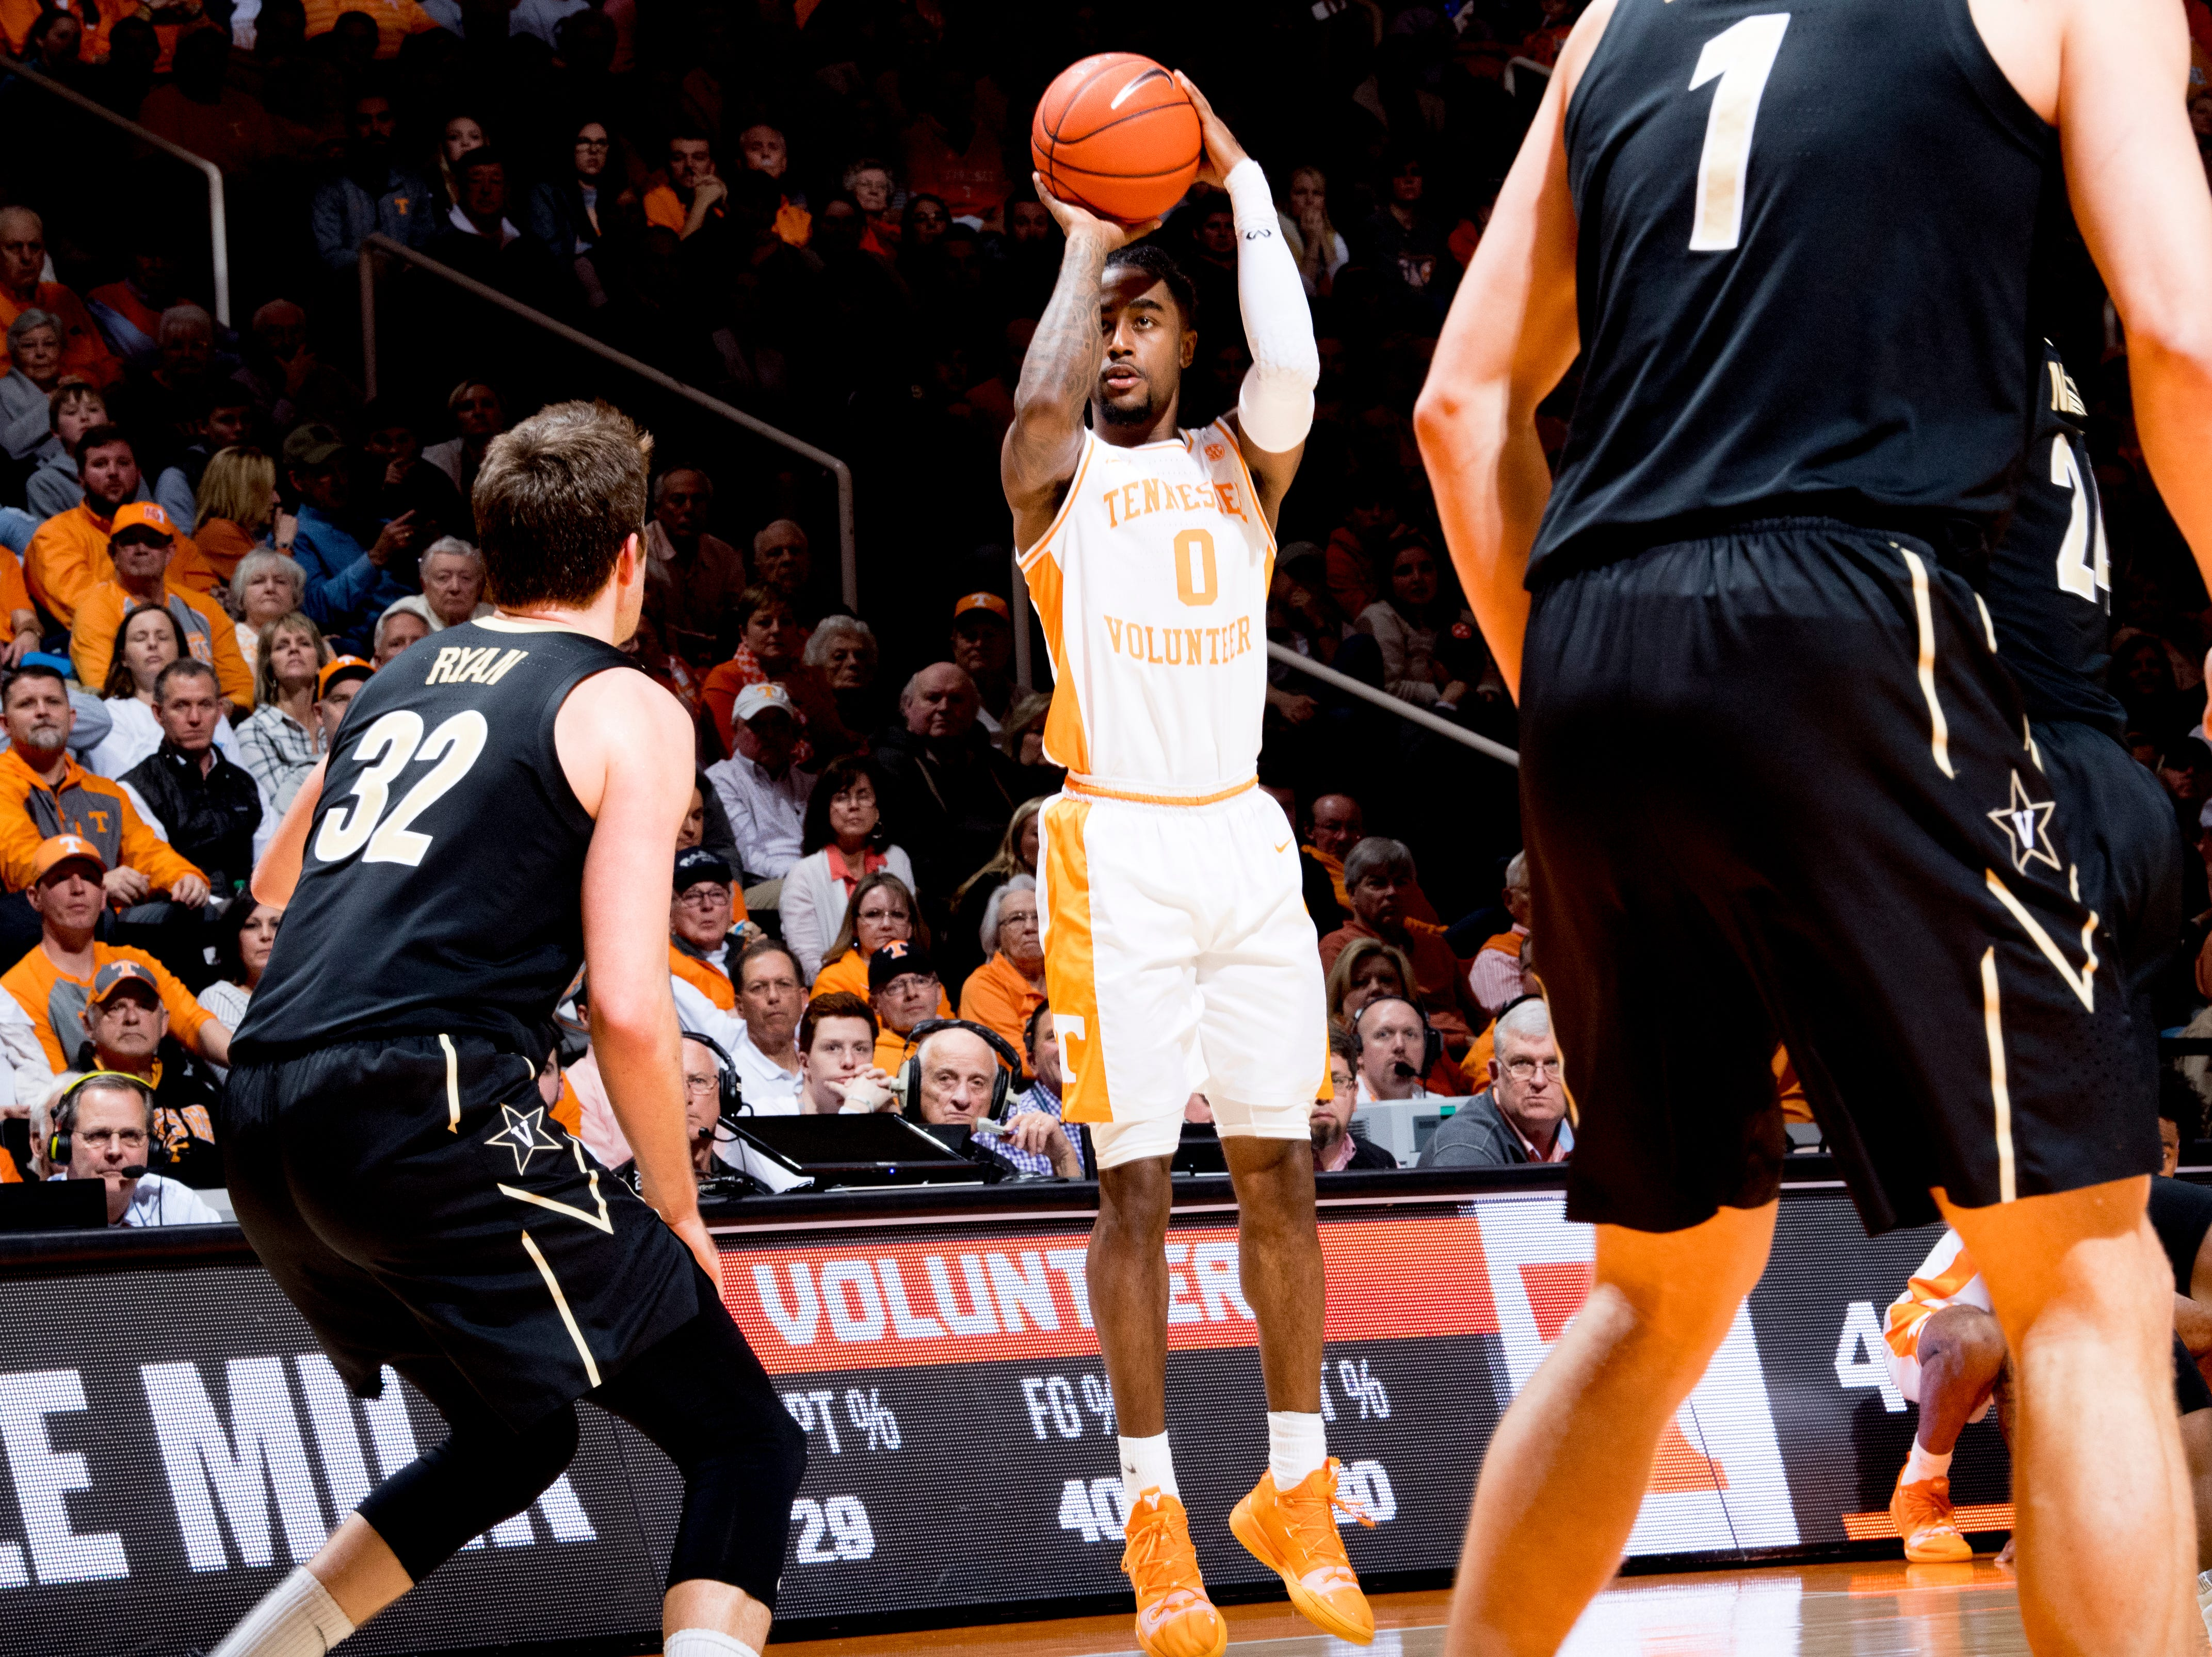 Tennessee guard Jordan Bone (0) shoots the ball during a game between Tennessee and Vanderbilt at Thompson-Boling Arena in Knoxville, Tennessee on Tuesday, February 19, 2019.